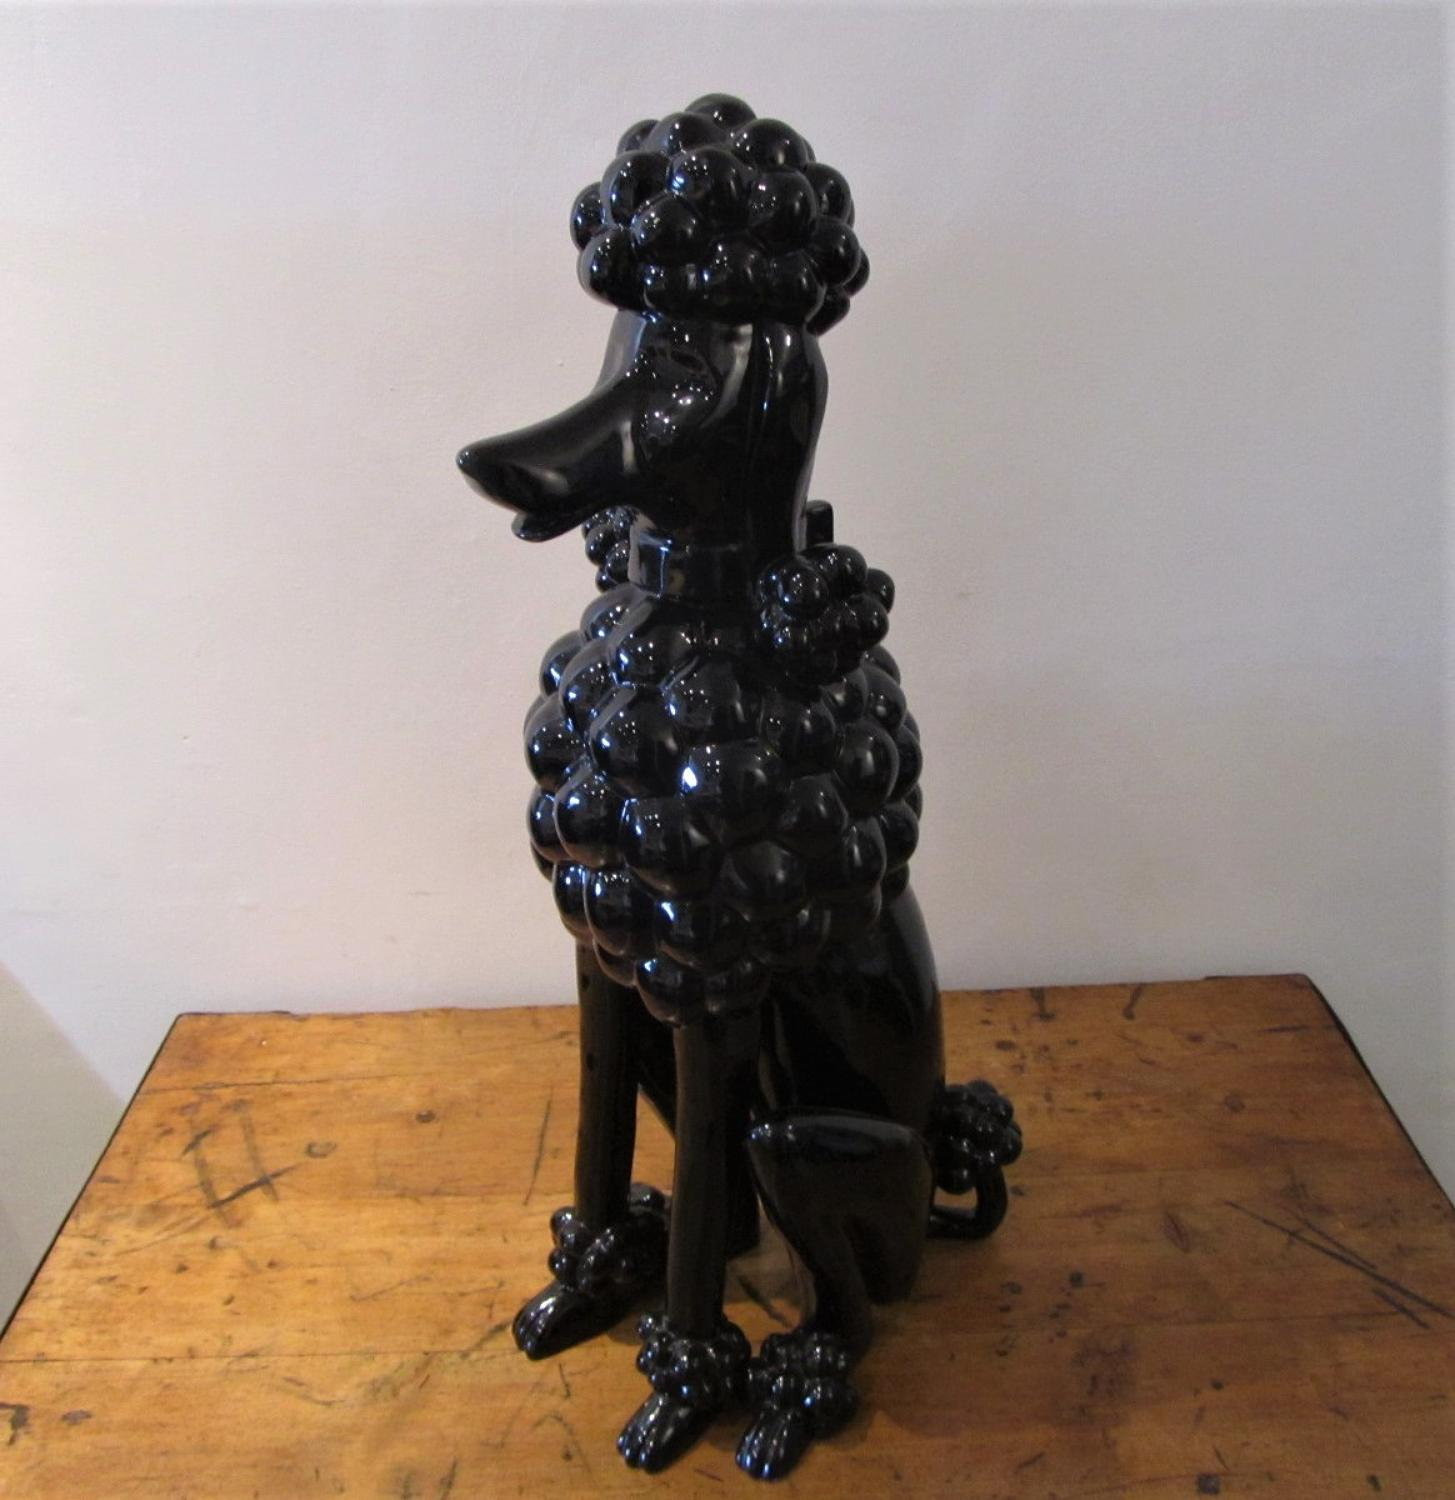 A ceramic 70's seated Black Poodle